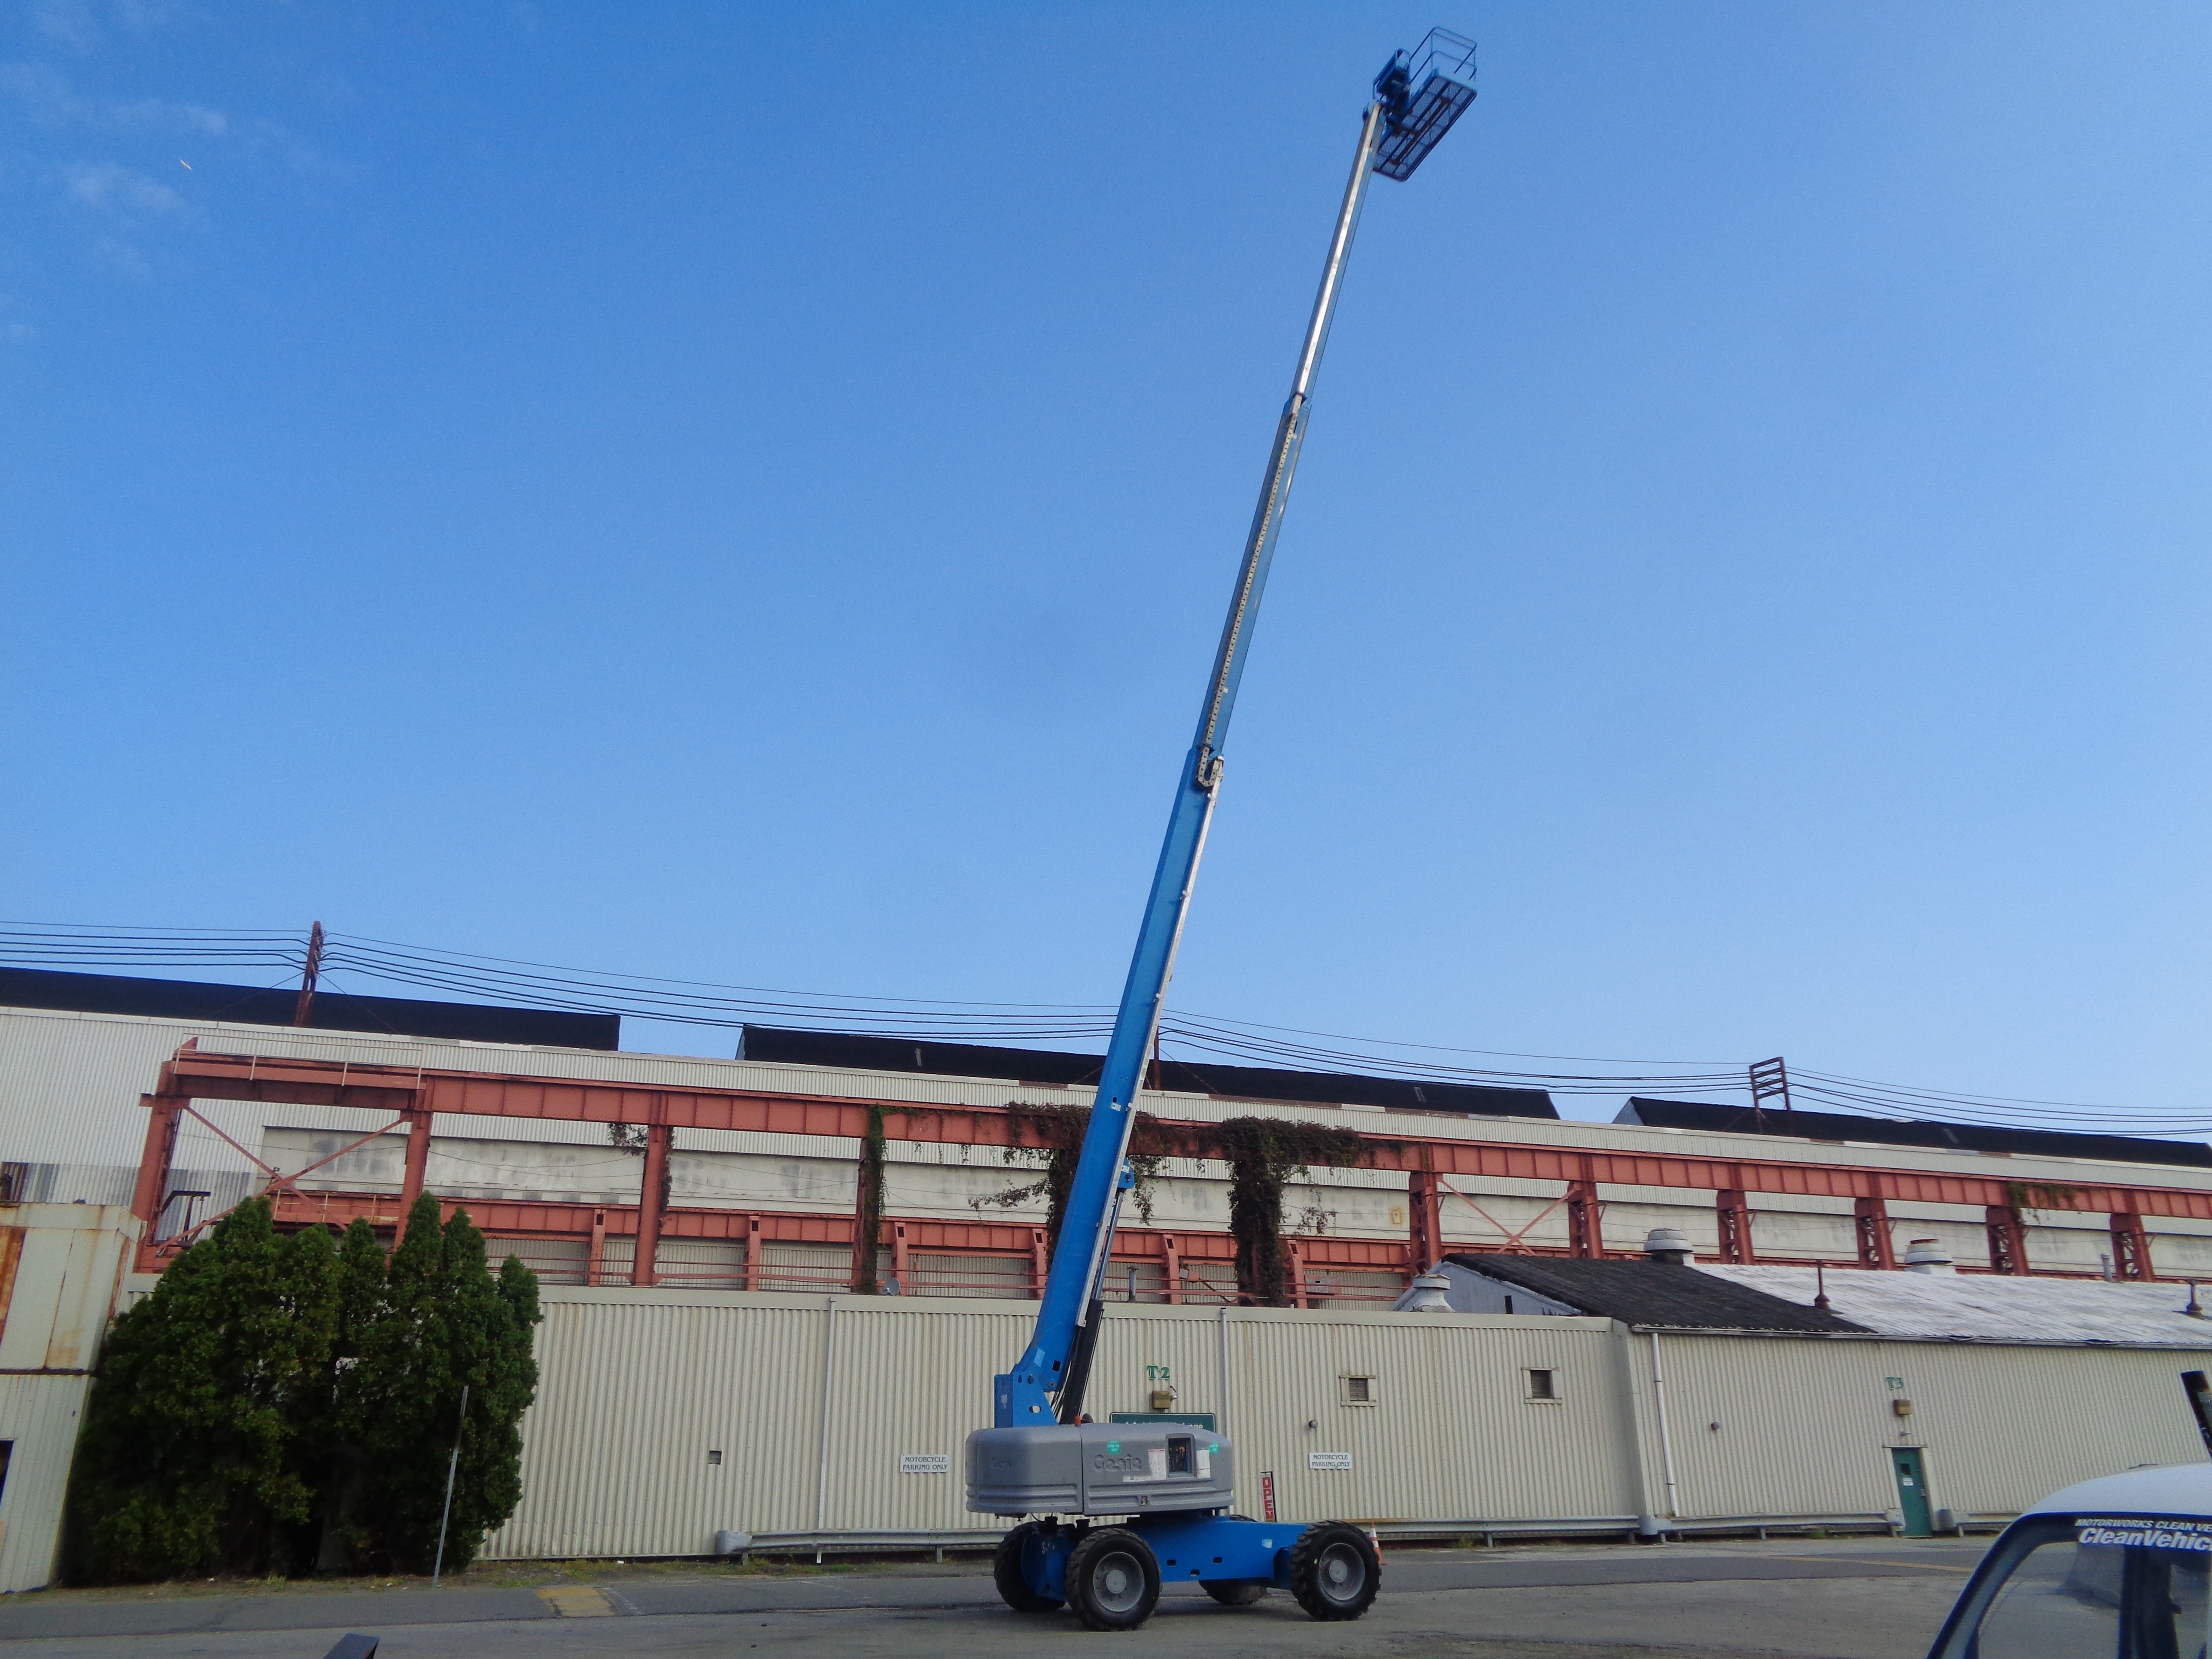 Genie S80 80ft Boom Lift - Image 19 of 22